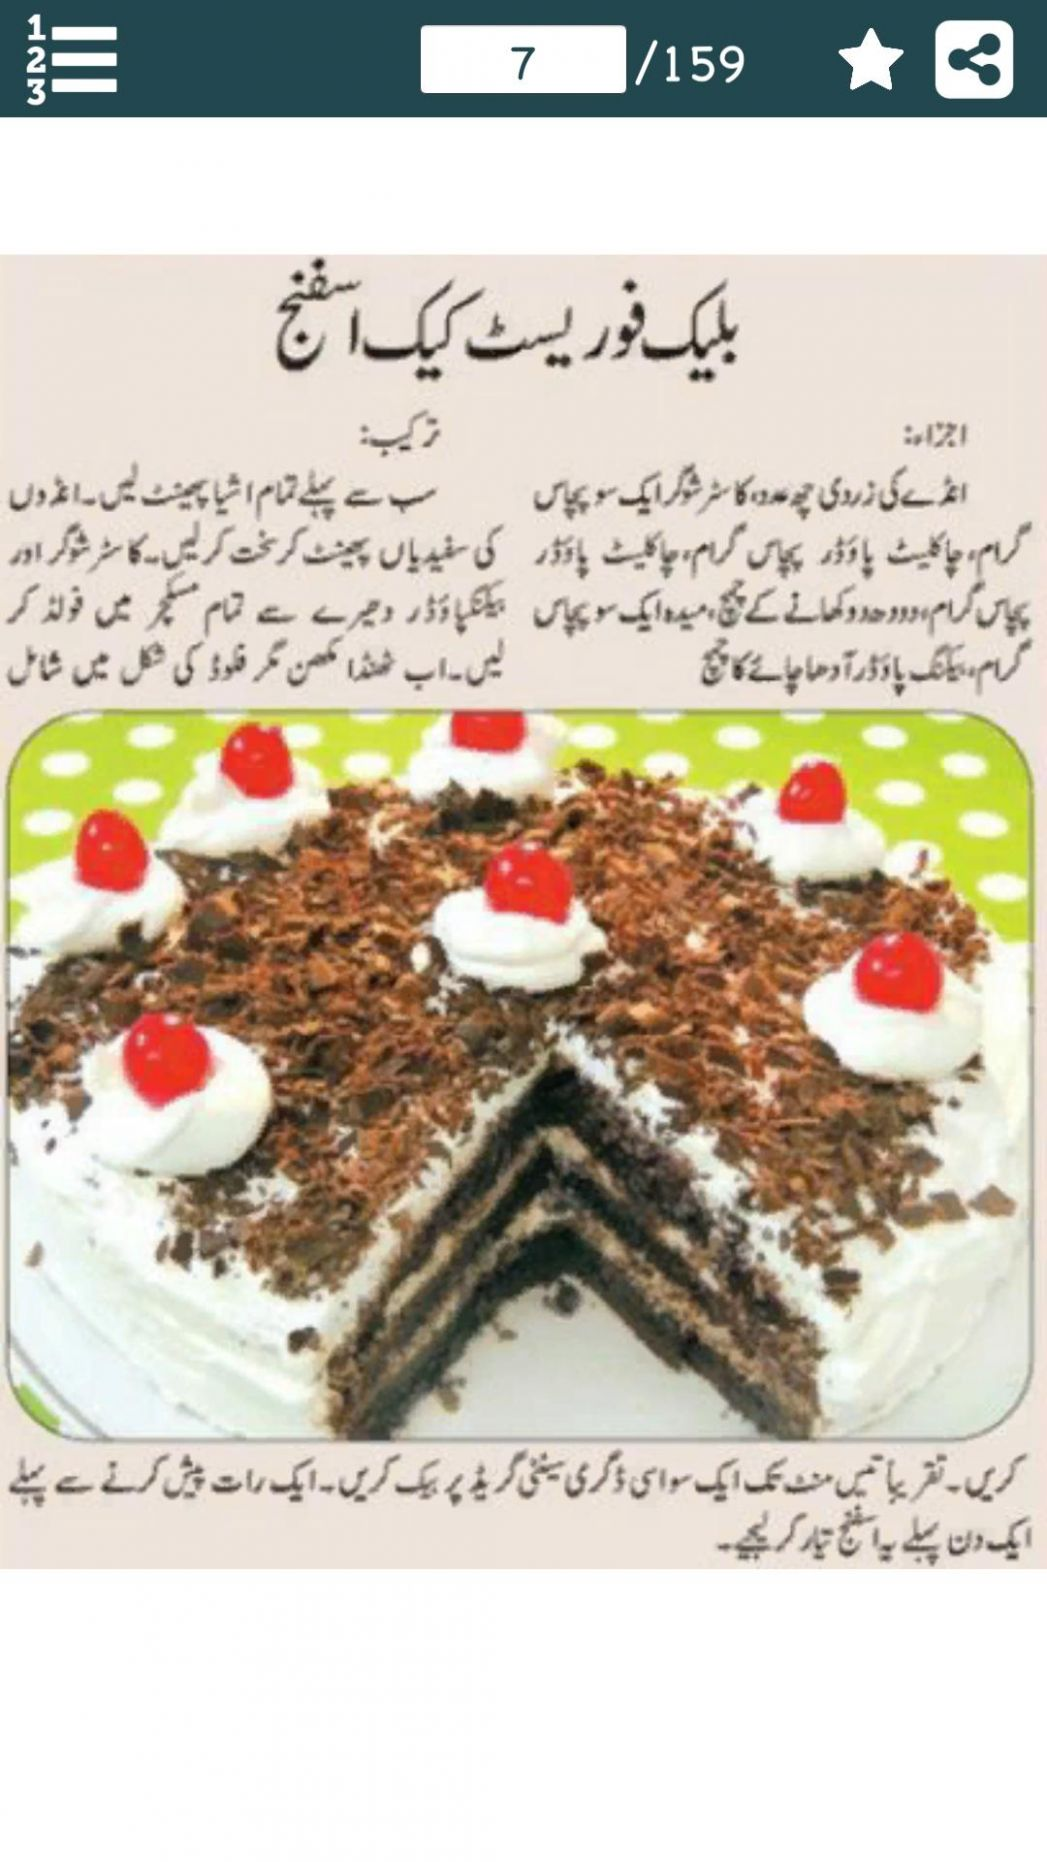 Cake Recipes in URDU for Android - APK Download